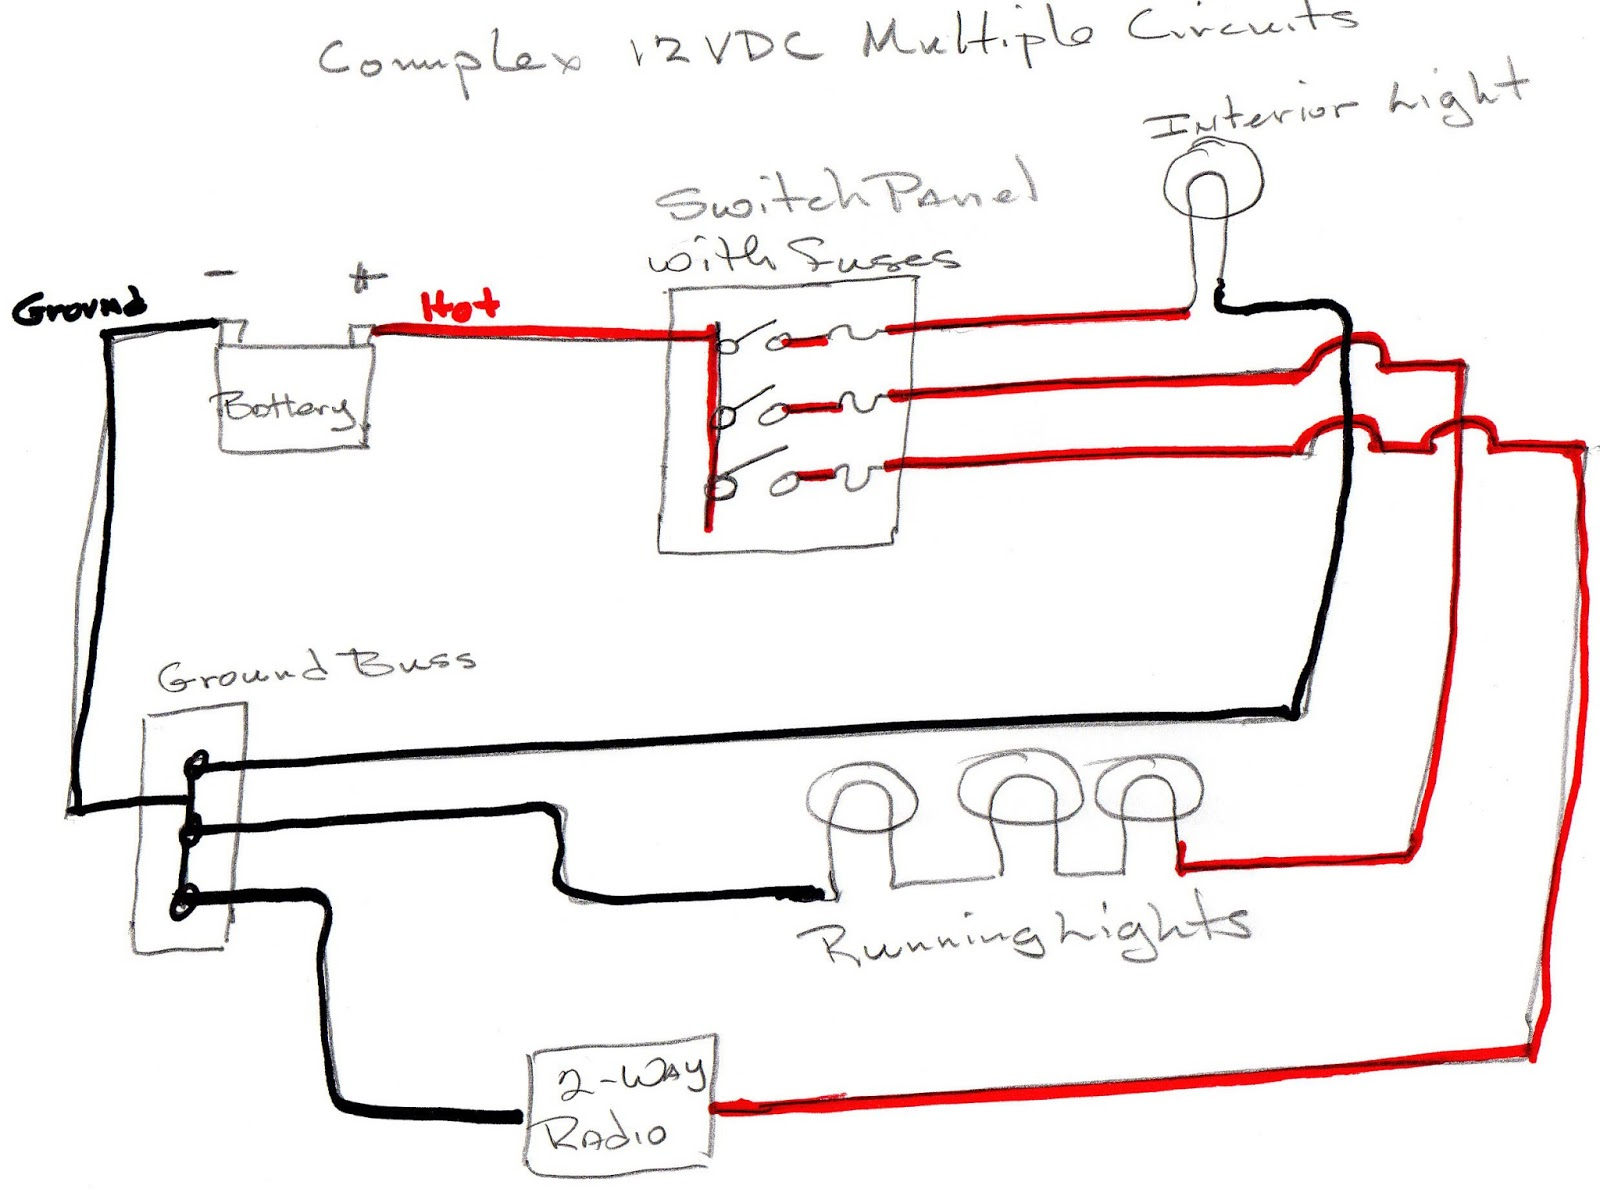 medium resolution of so here we have three 12vdc circuits made up of three red wires and three black wires when extra circuits are added a switch panel with switches and